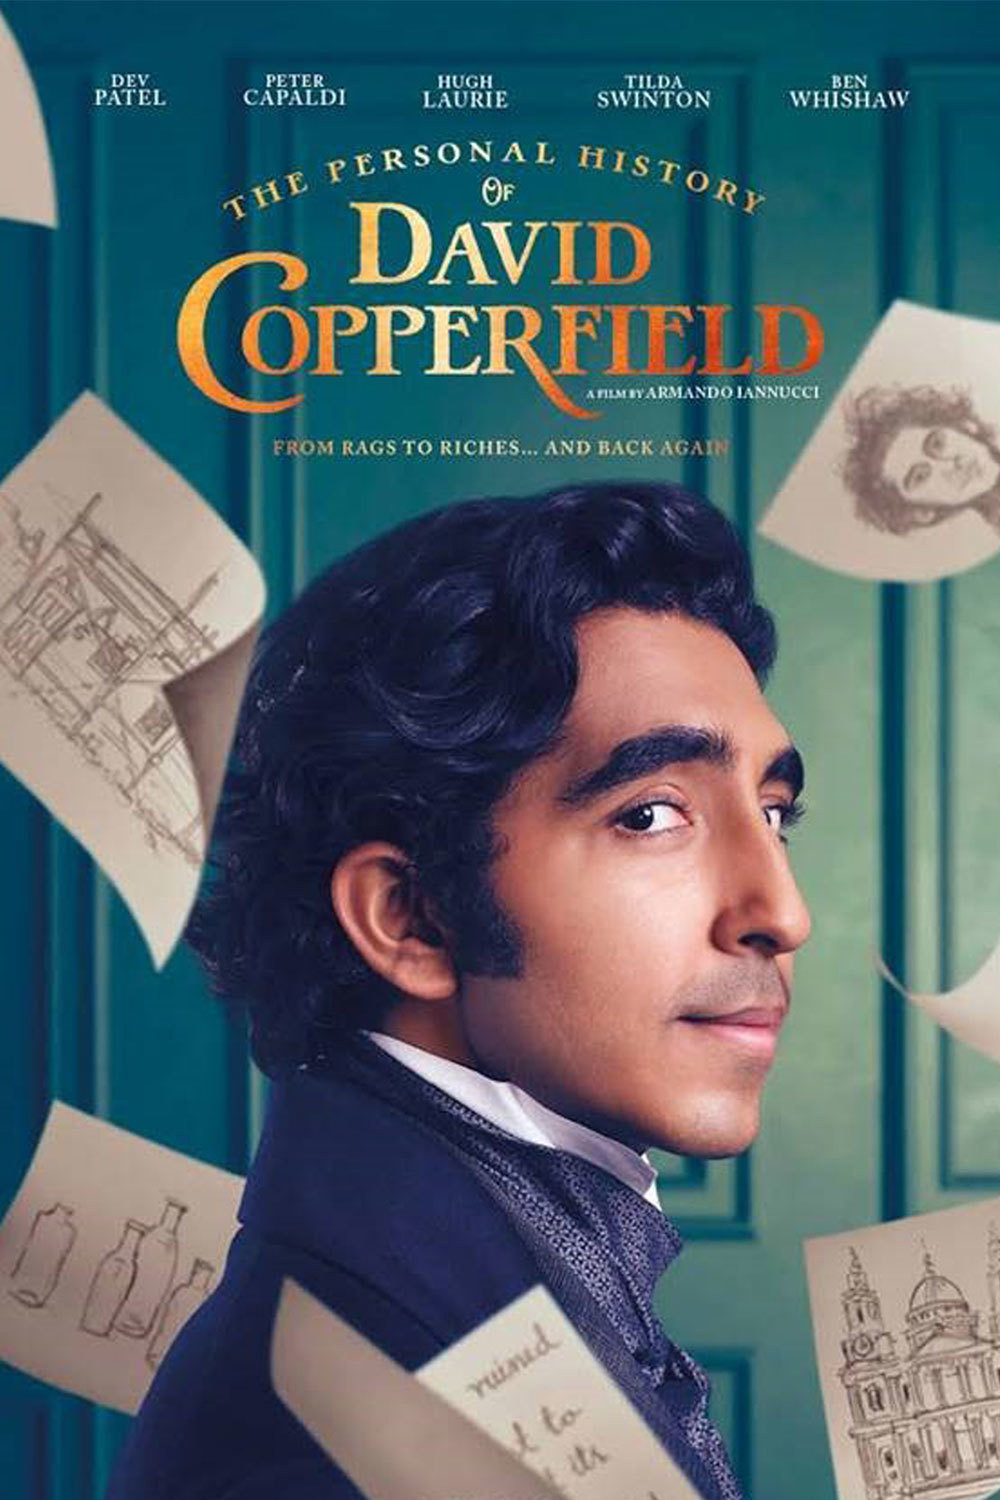 Theatre Royal to Host Special Screenings of 'Personal History of David Copperfield'.